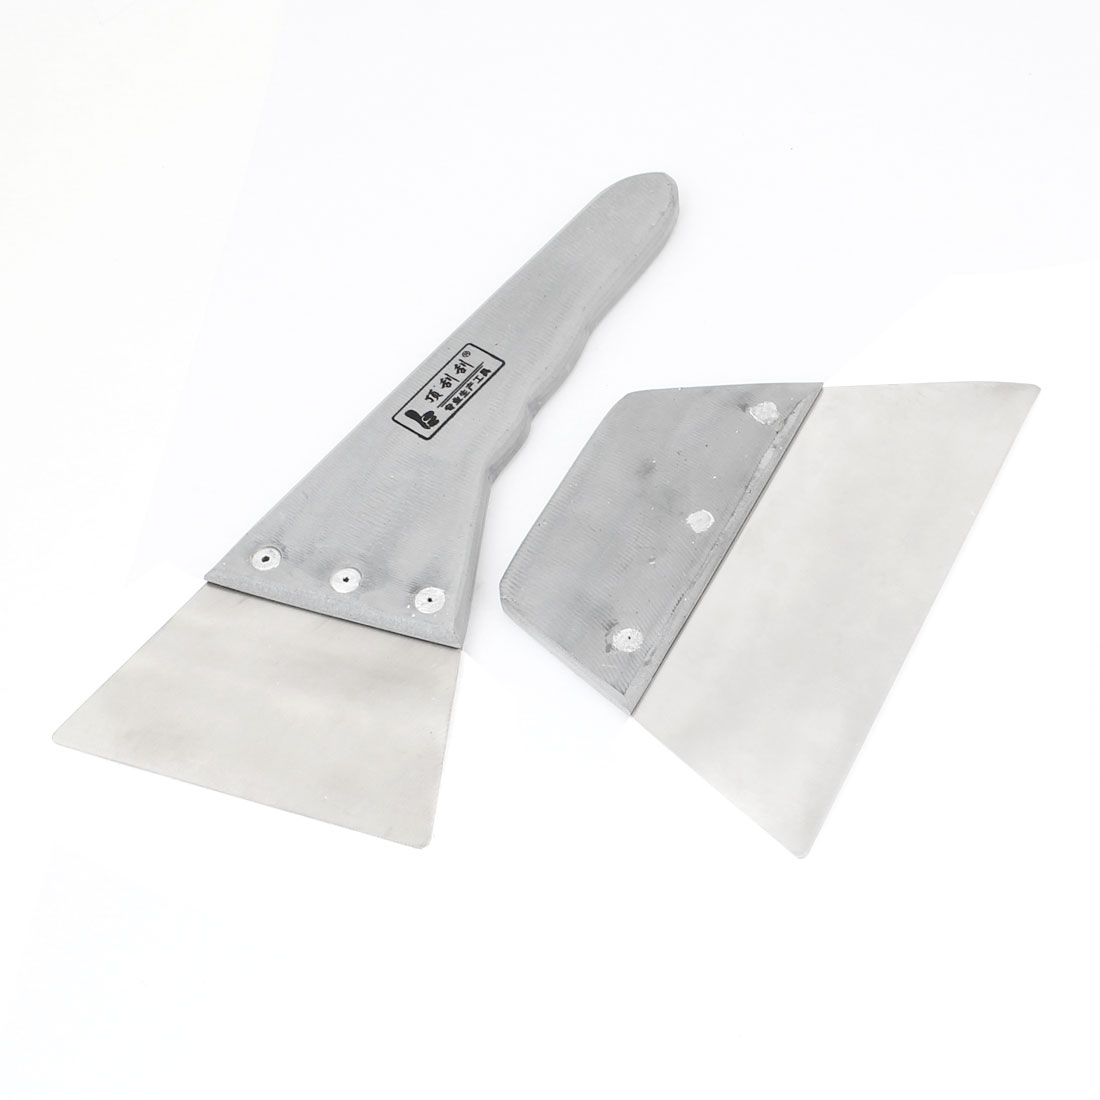 Automobile Car Gray Plastic Handle Stainless Steel Blade Film Scraper 2 Pcs